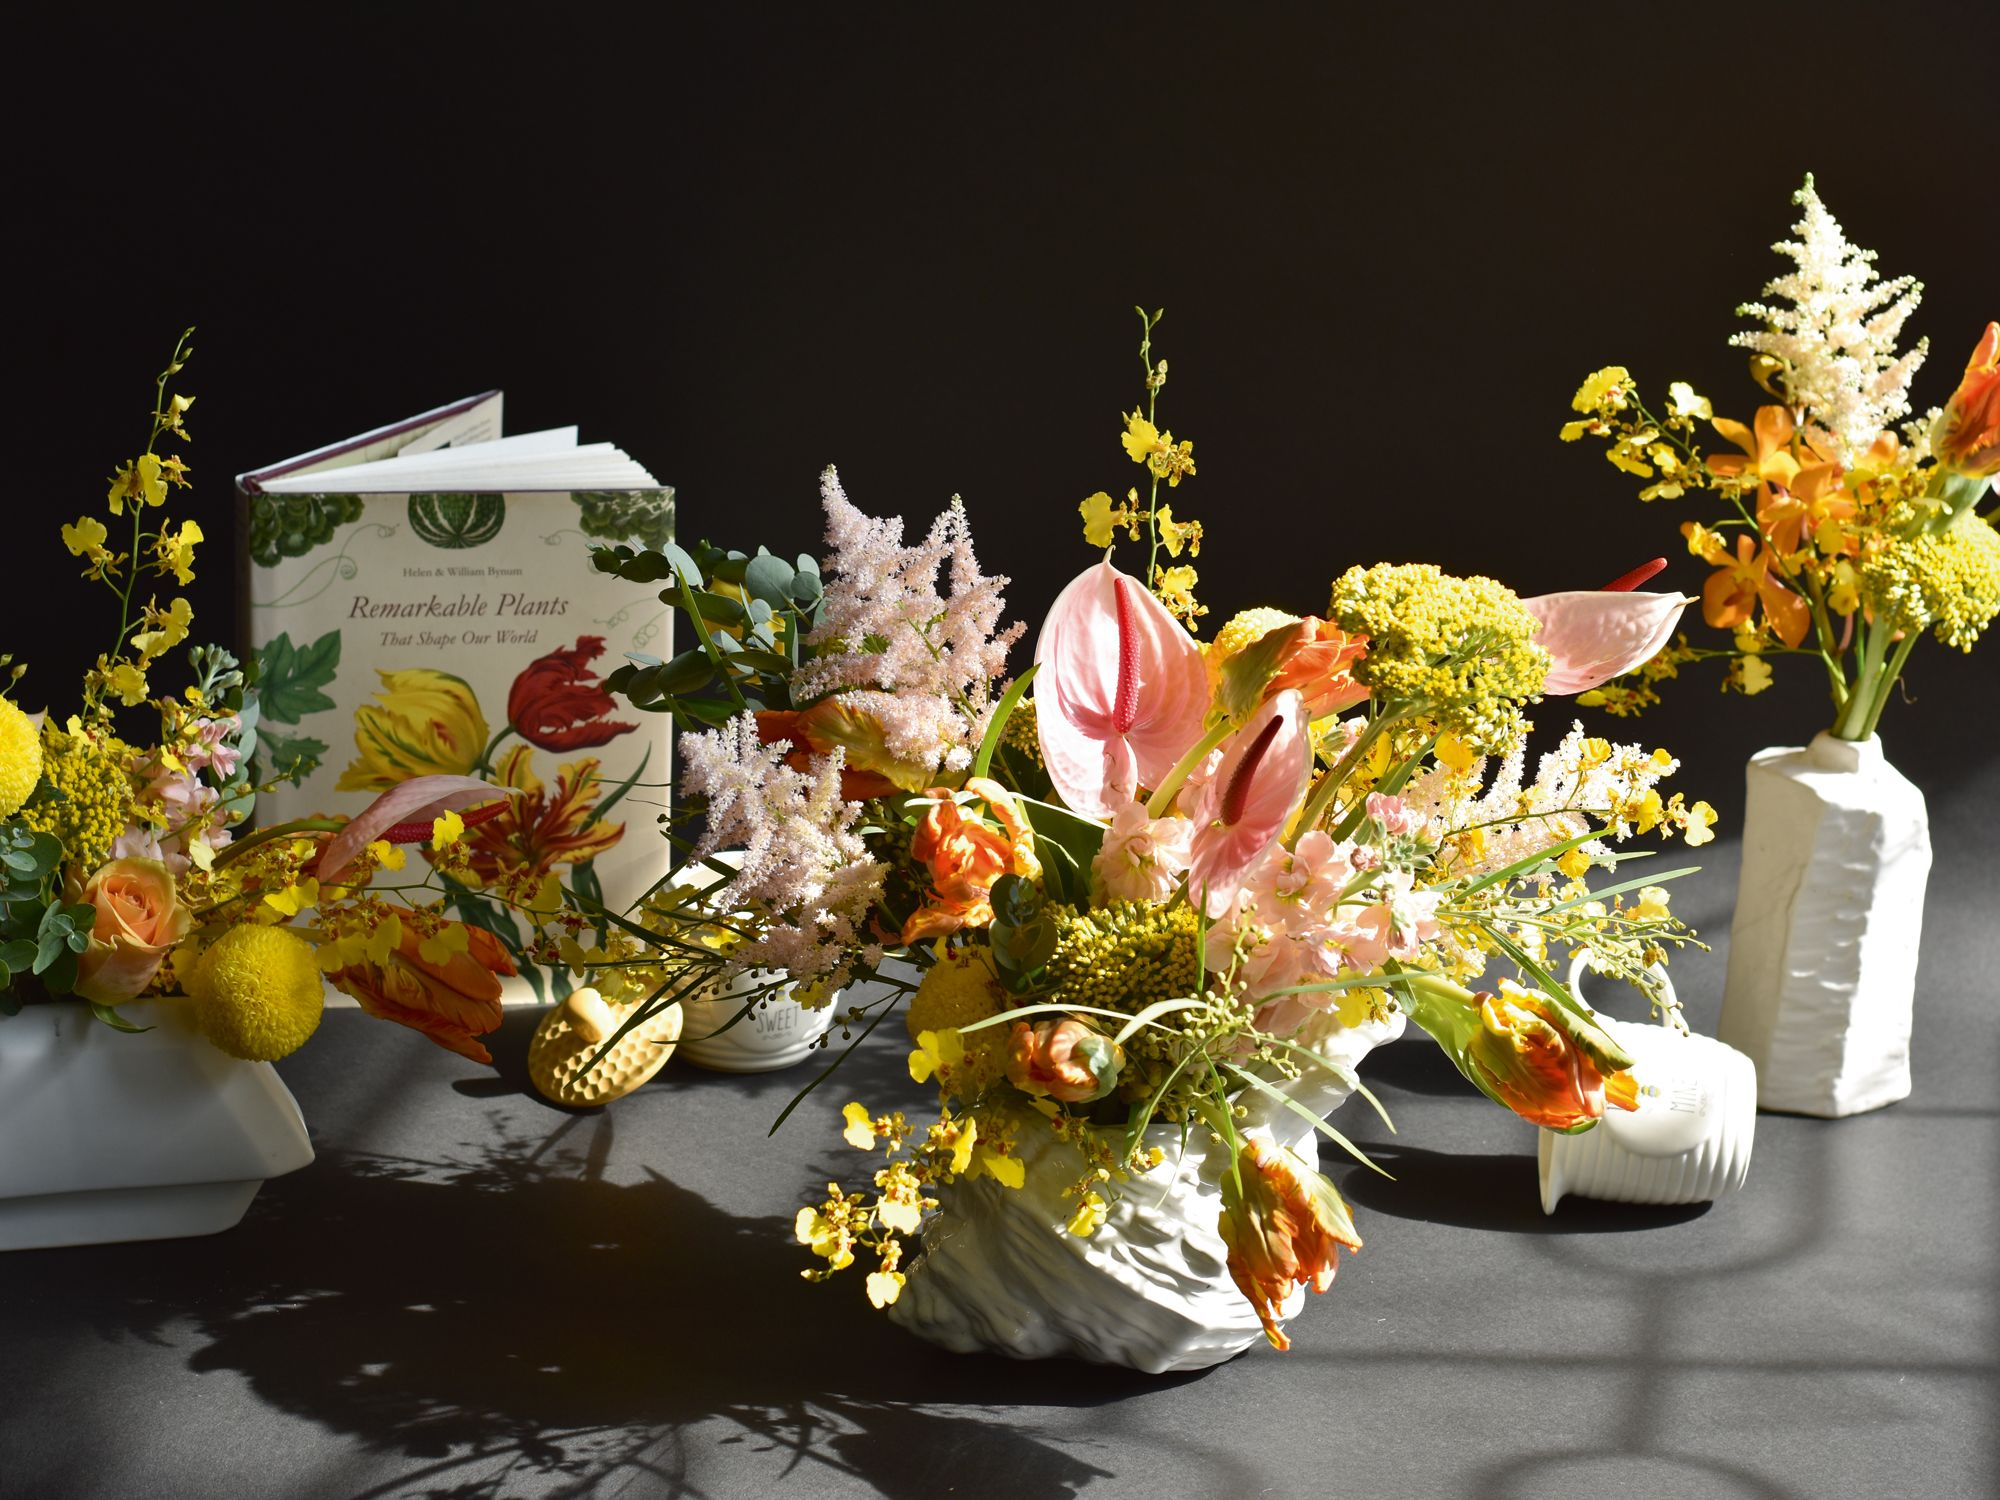 This colourful tablescape by Charlotte Puxley plays with proportions by housing the flowers in vessels of varying heights